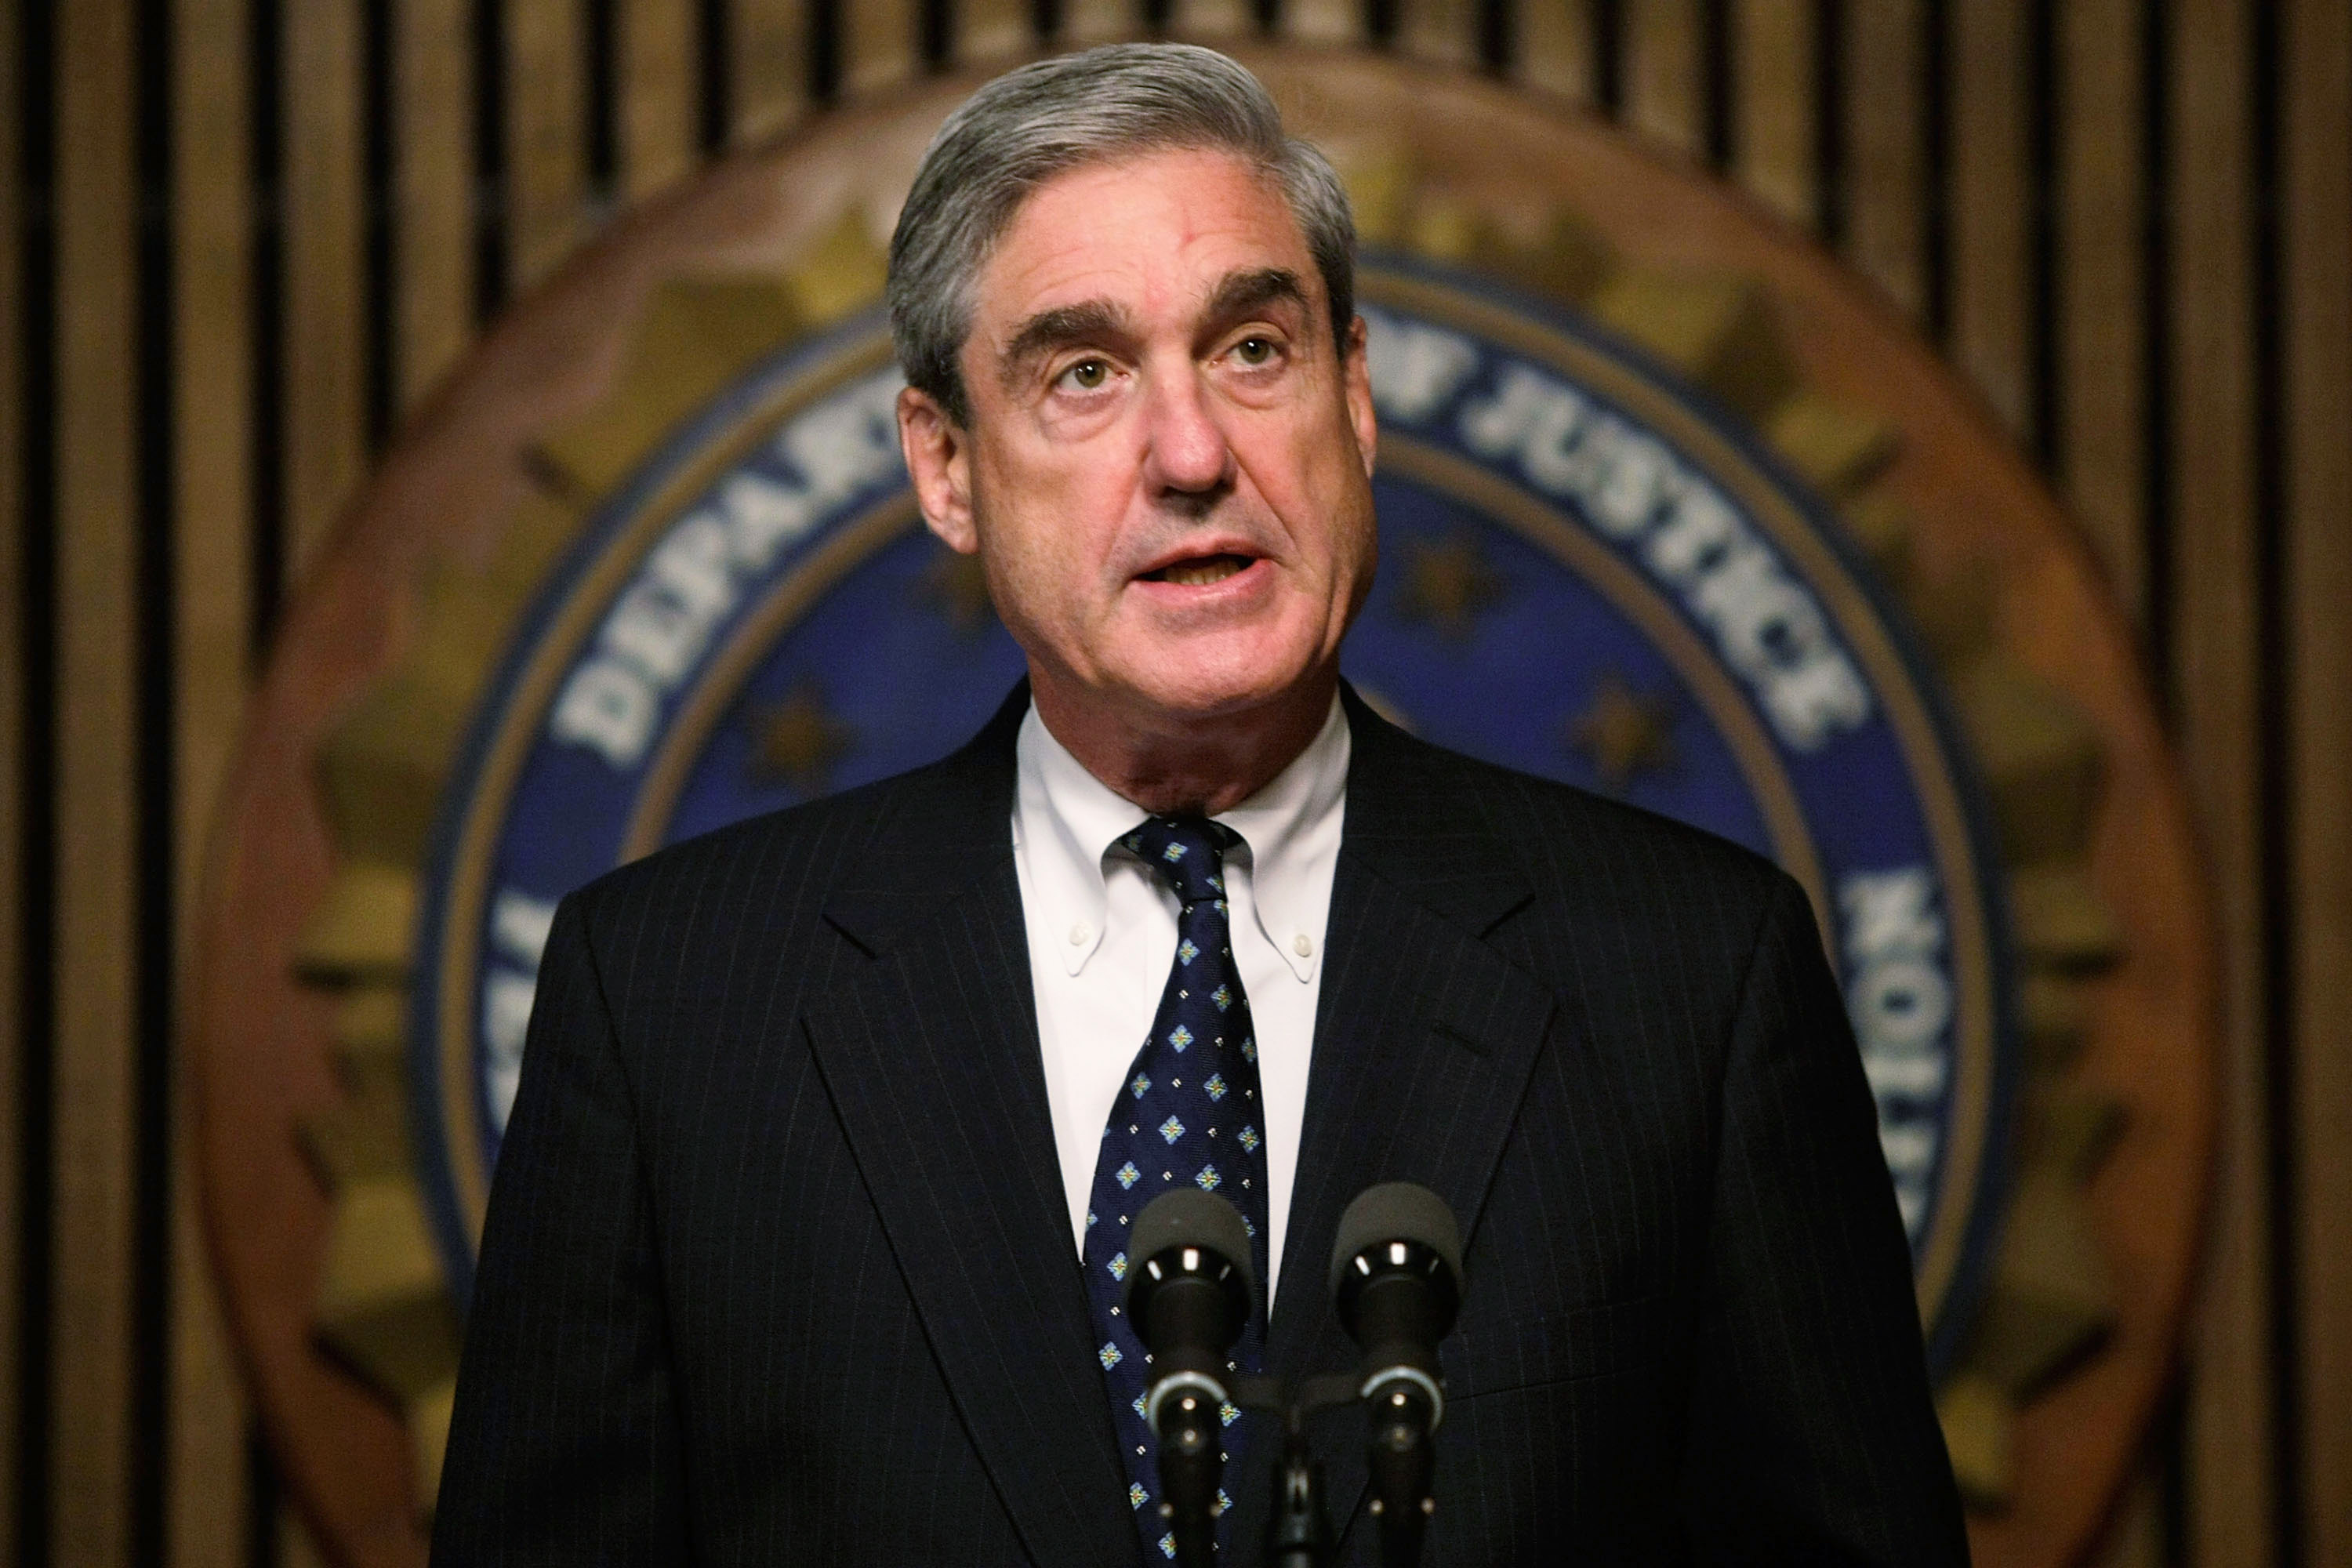 FBI Director Robert Mueller speaks during a news conference at the FBI headquarters June 25, 2008 in Washington, DC. The news conference was to mark the 5th anniversary of Innocence Lost initiative. (Photo by Alex Wong/Getty Images)